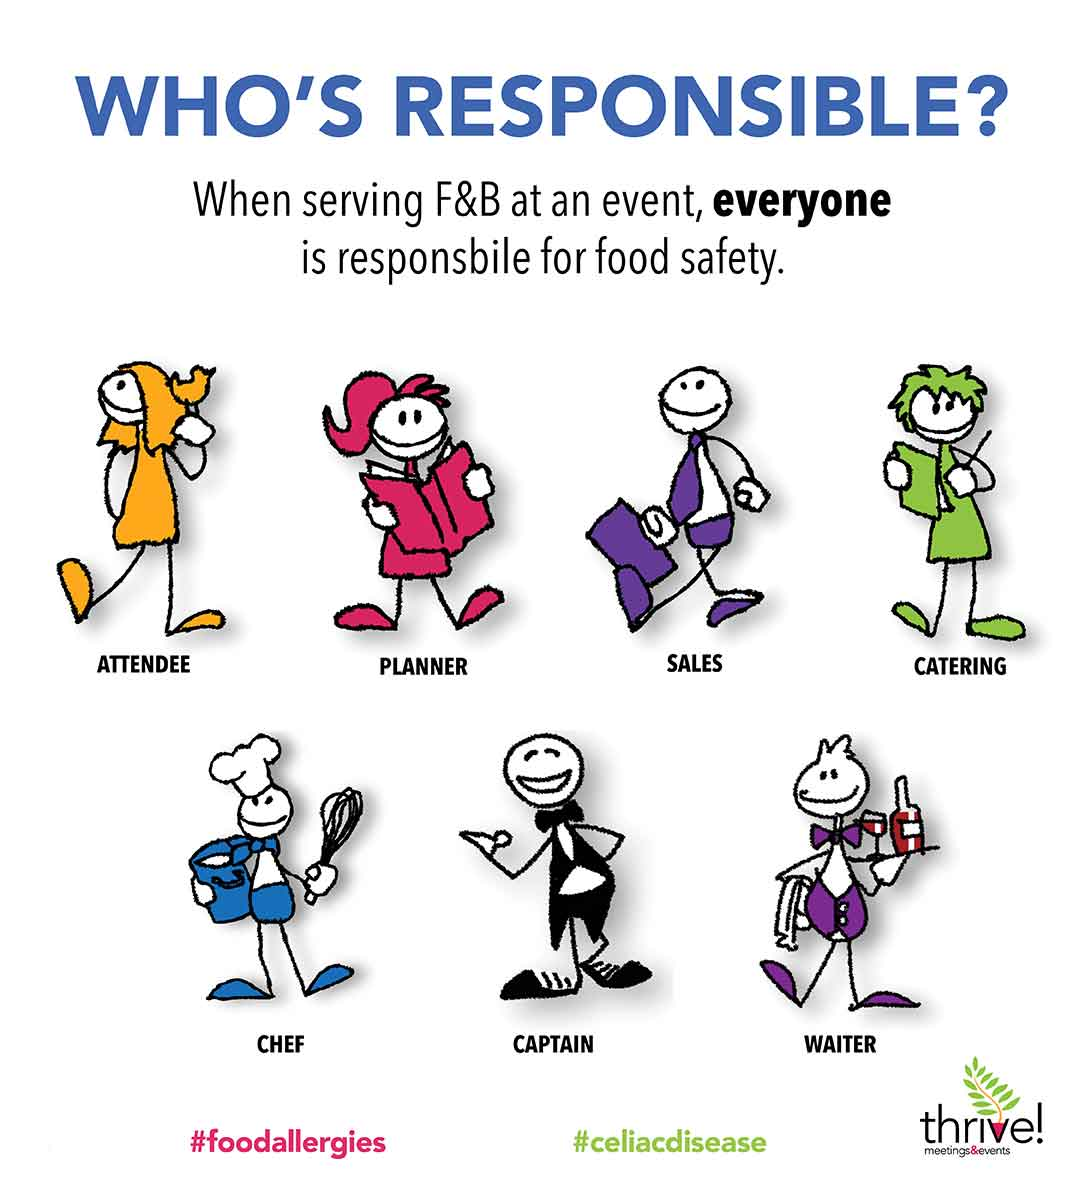 infographic showing chararacter personas of who in catering is responsible for food safety when it comes to food allergies and celiac disease